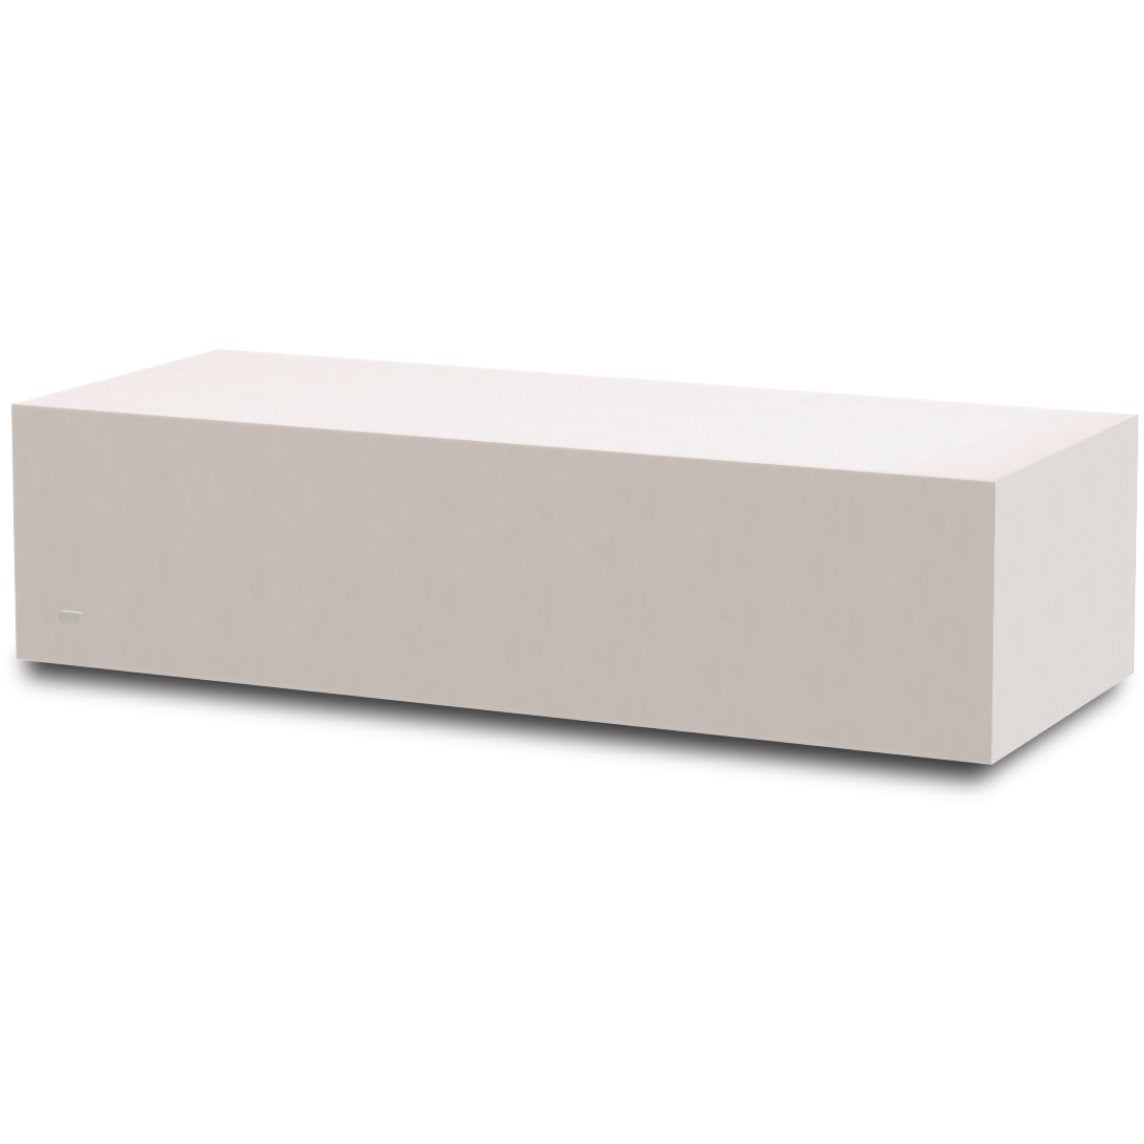 Bloc L1 Concrete Coffee Table - Outdoor Living Essentials